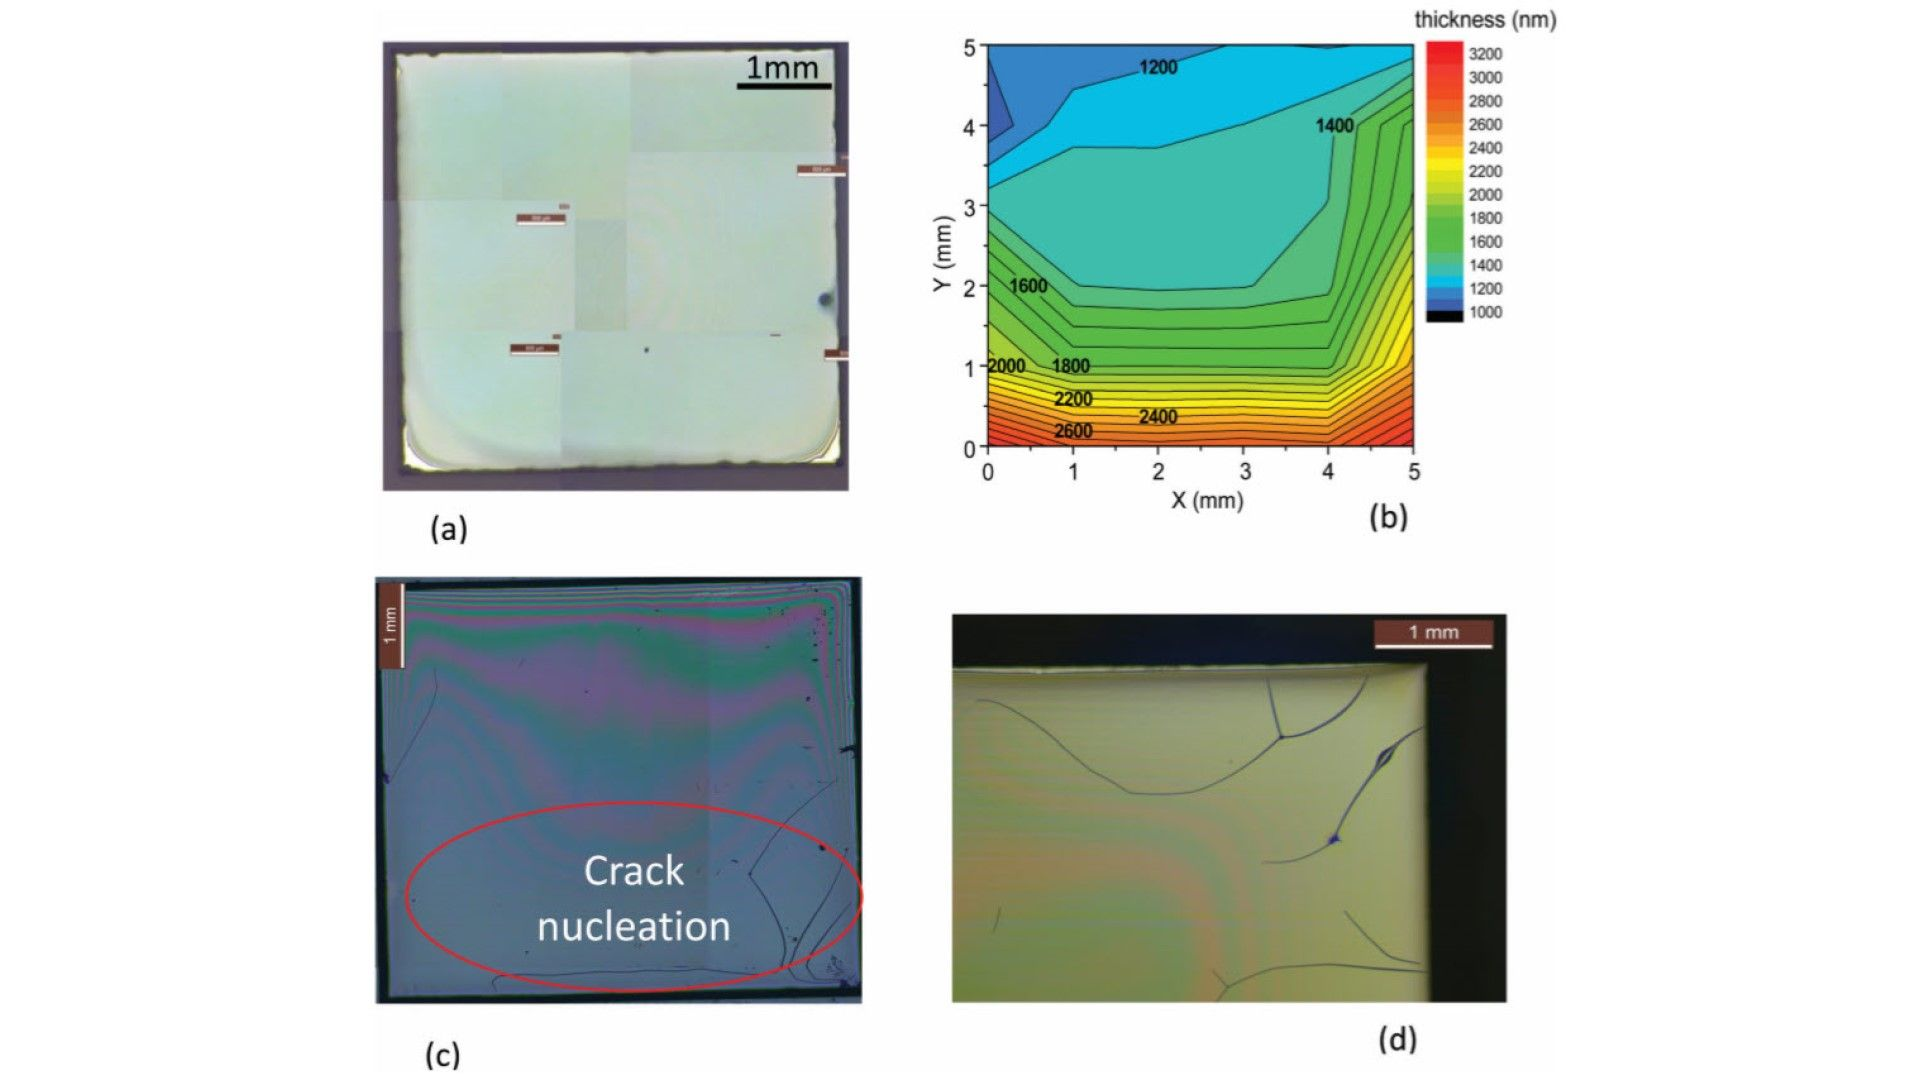 Pyrolysis study of solution-derived superconducting YBa2Cu3O7 films: disentangling the physico-chemical transformations